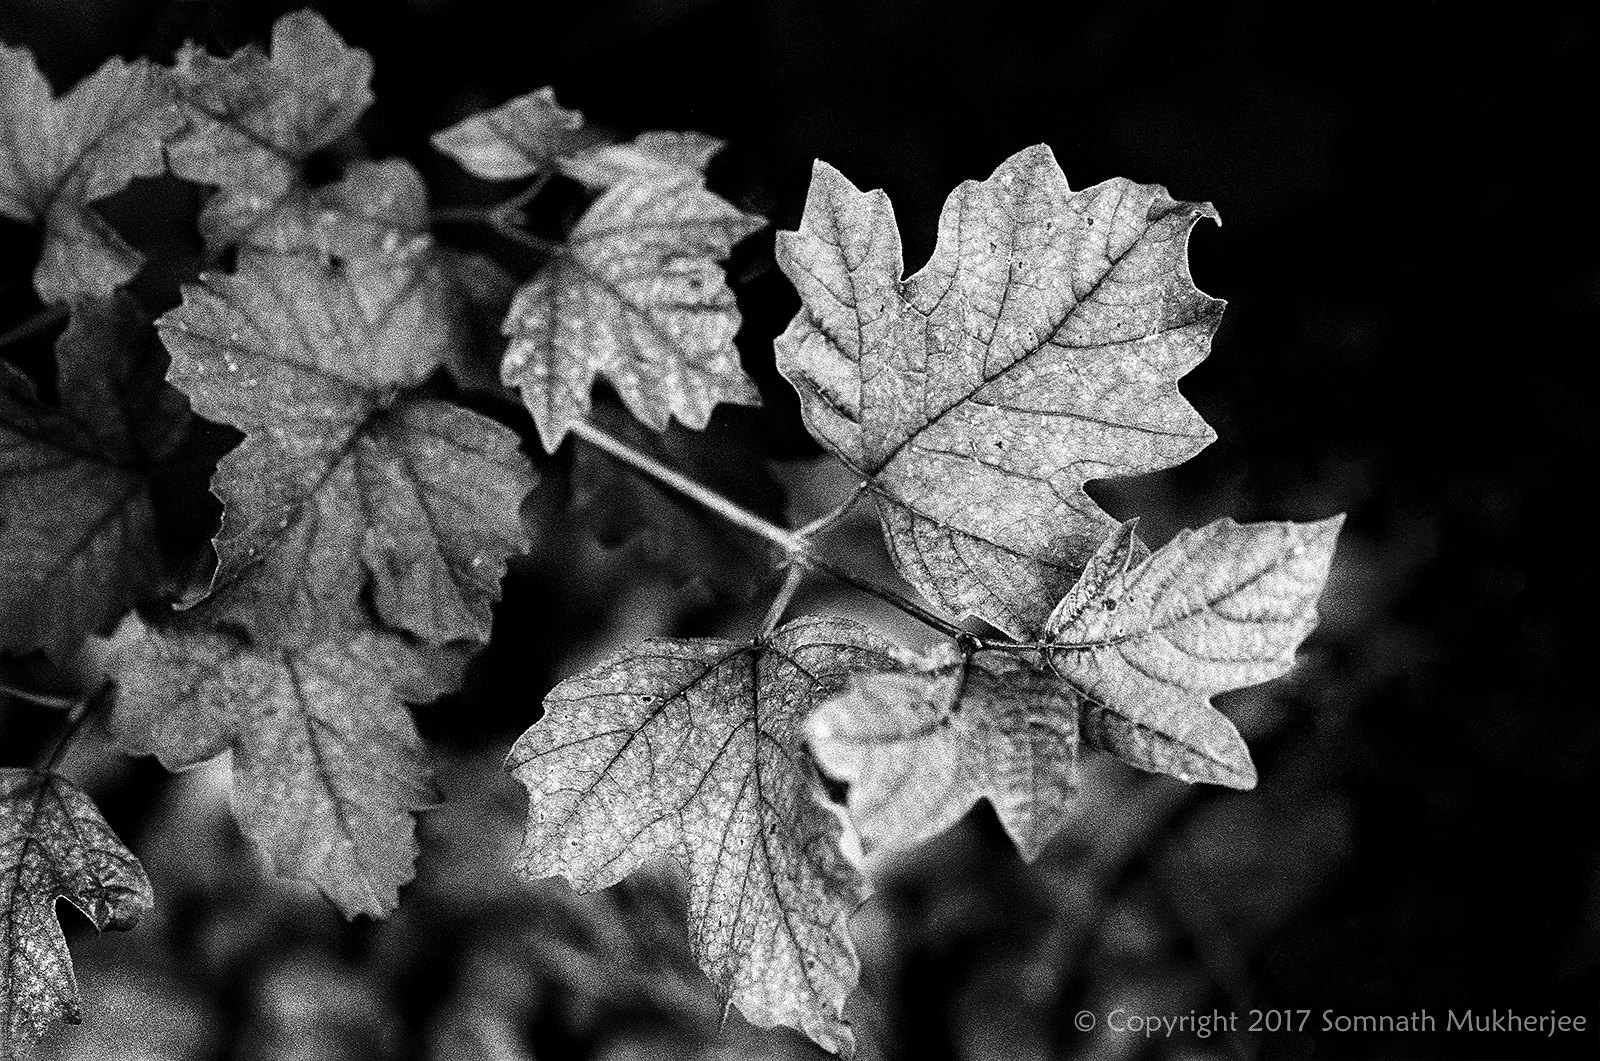 Leaves | Englewood, CO | August, 2017 by Somnath Mukherjee Photoghaphy